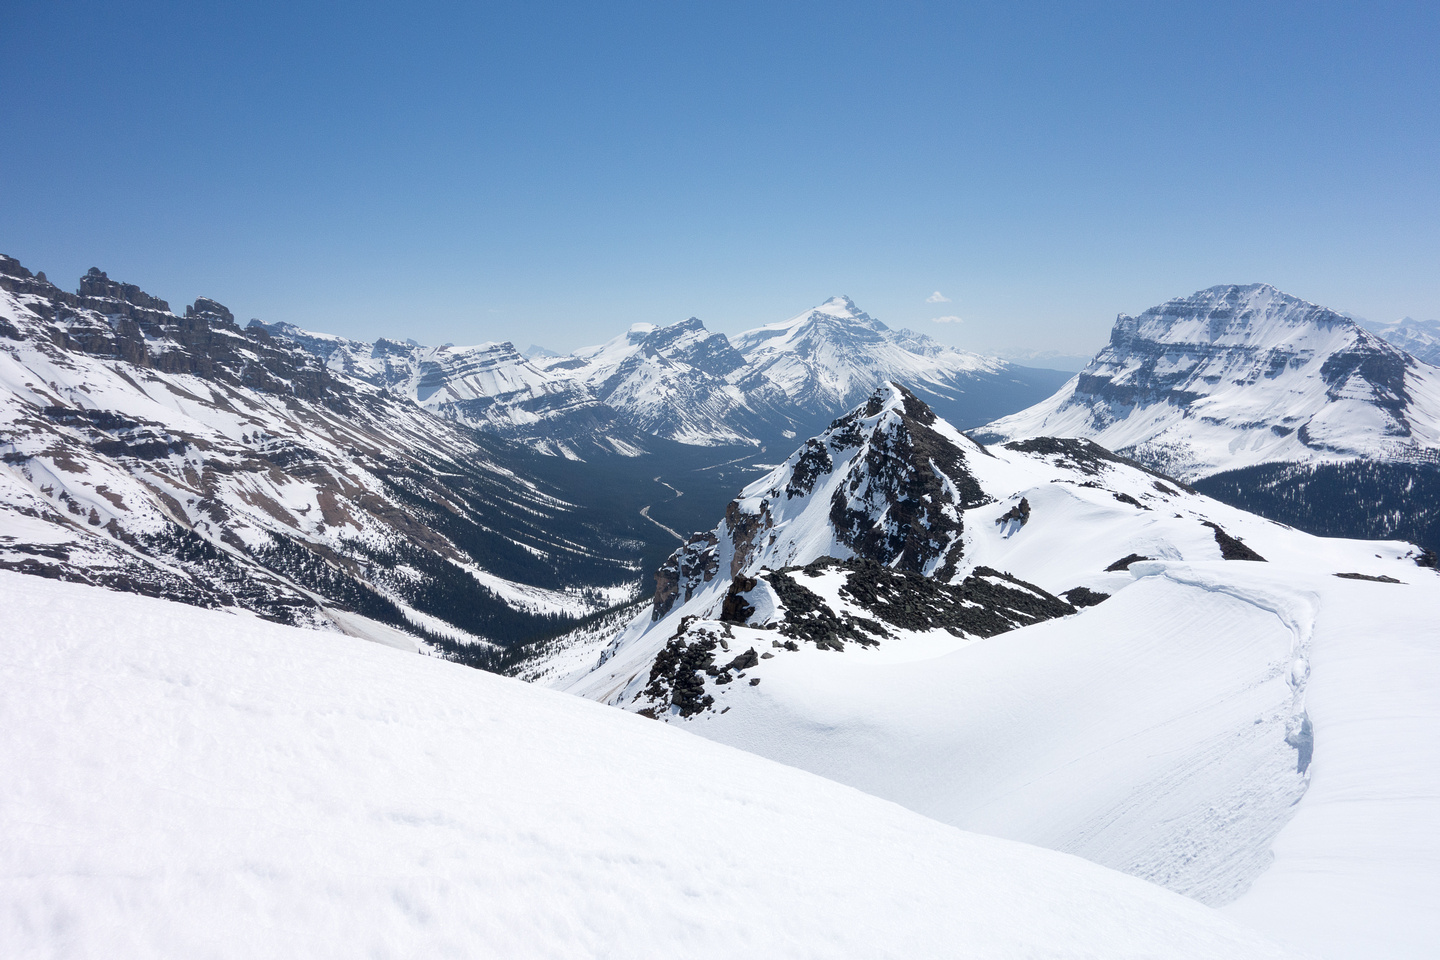 Looking south towards Hector (L) and Bow Peak (R).